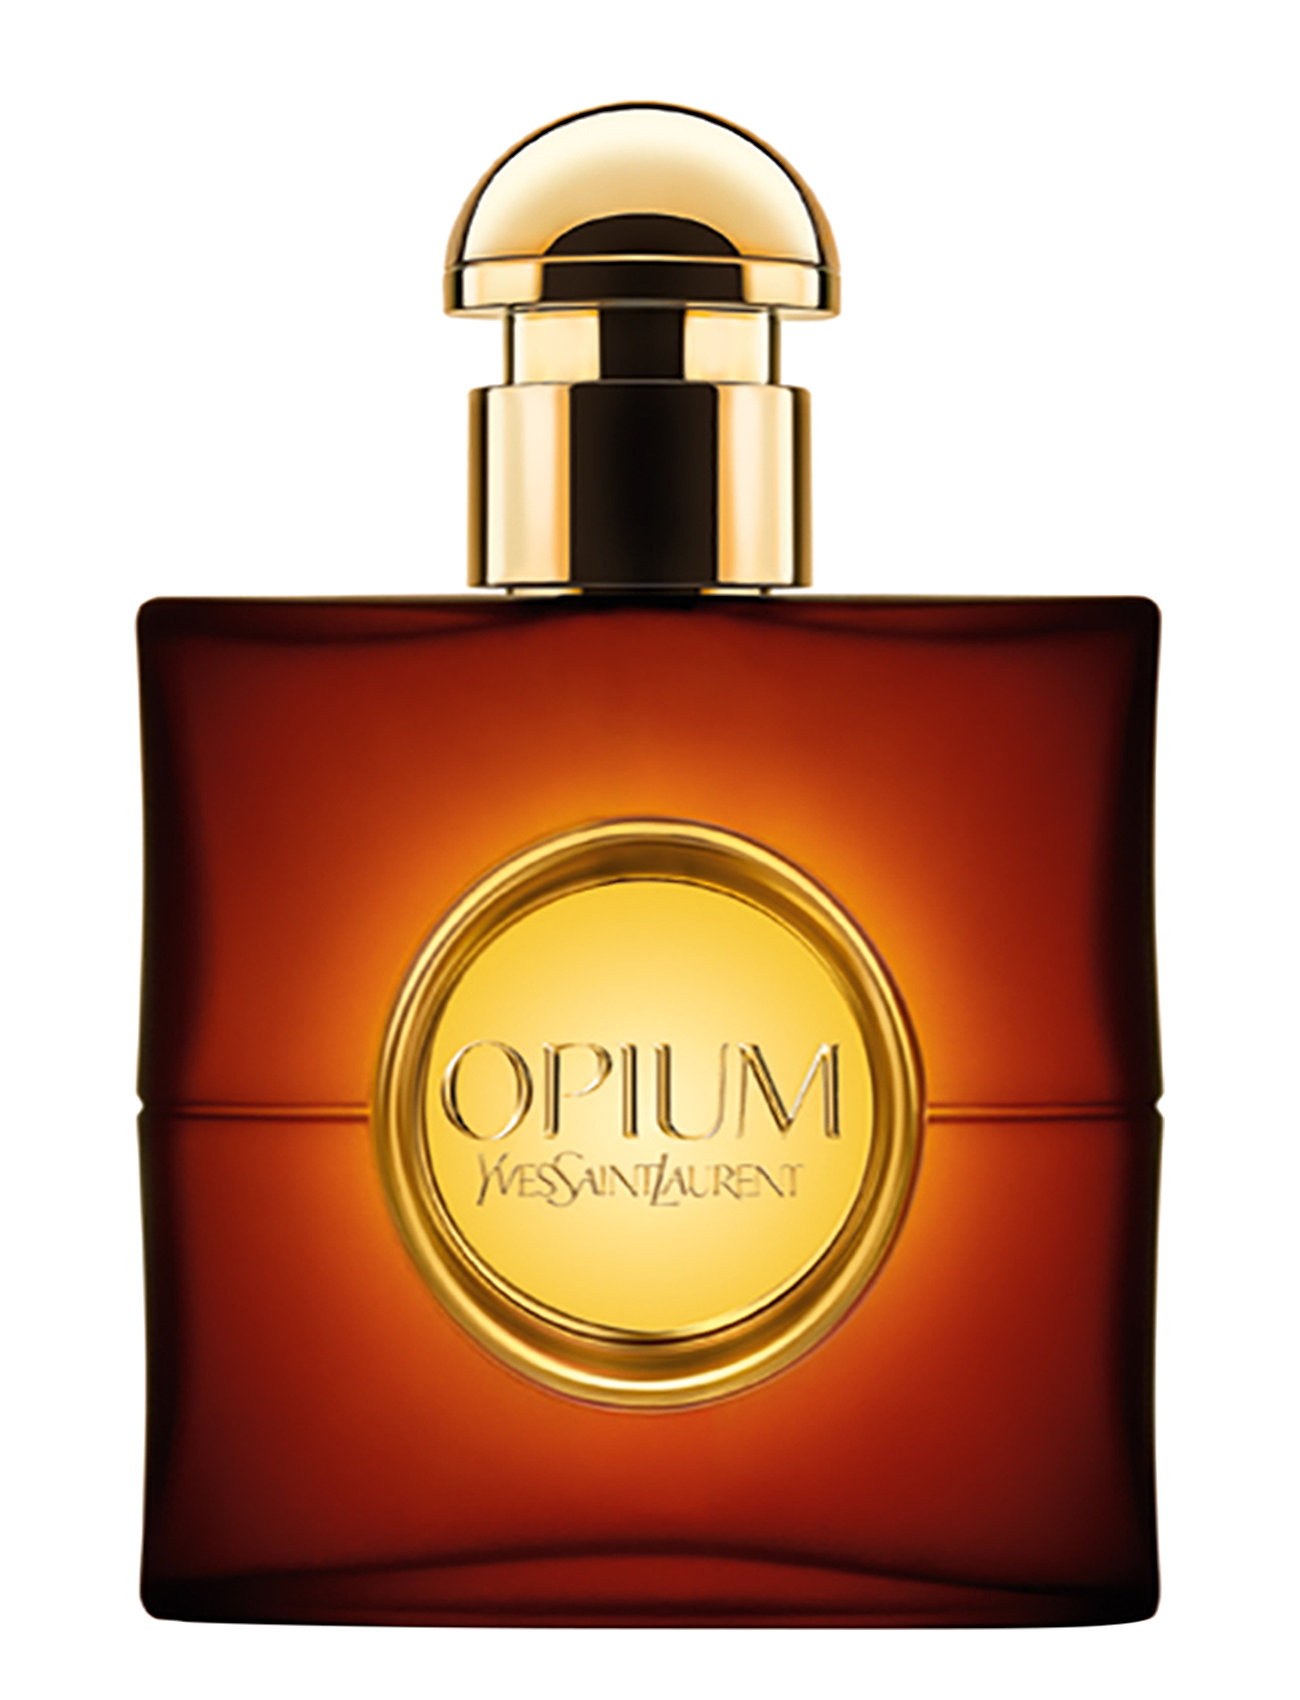 Opium Eau De Toilette 30 Ml. Yves Saint Laurent  til Damer i